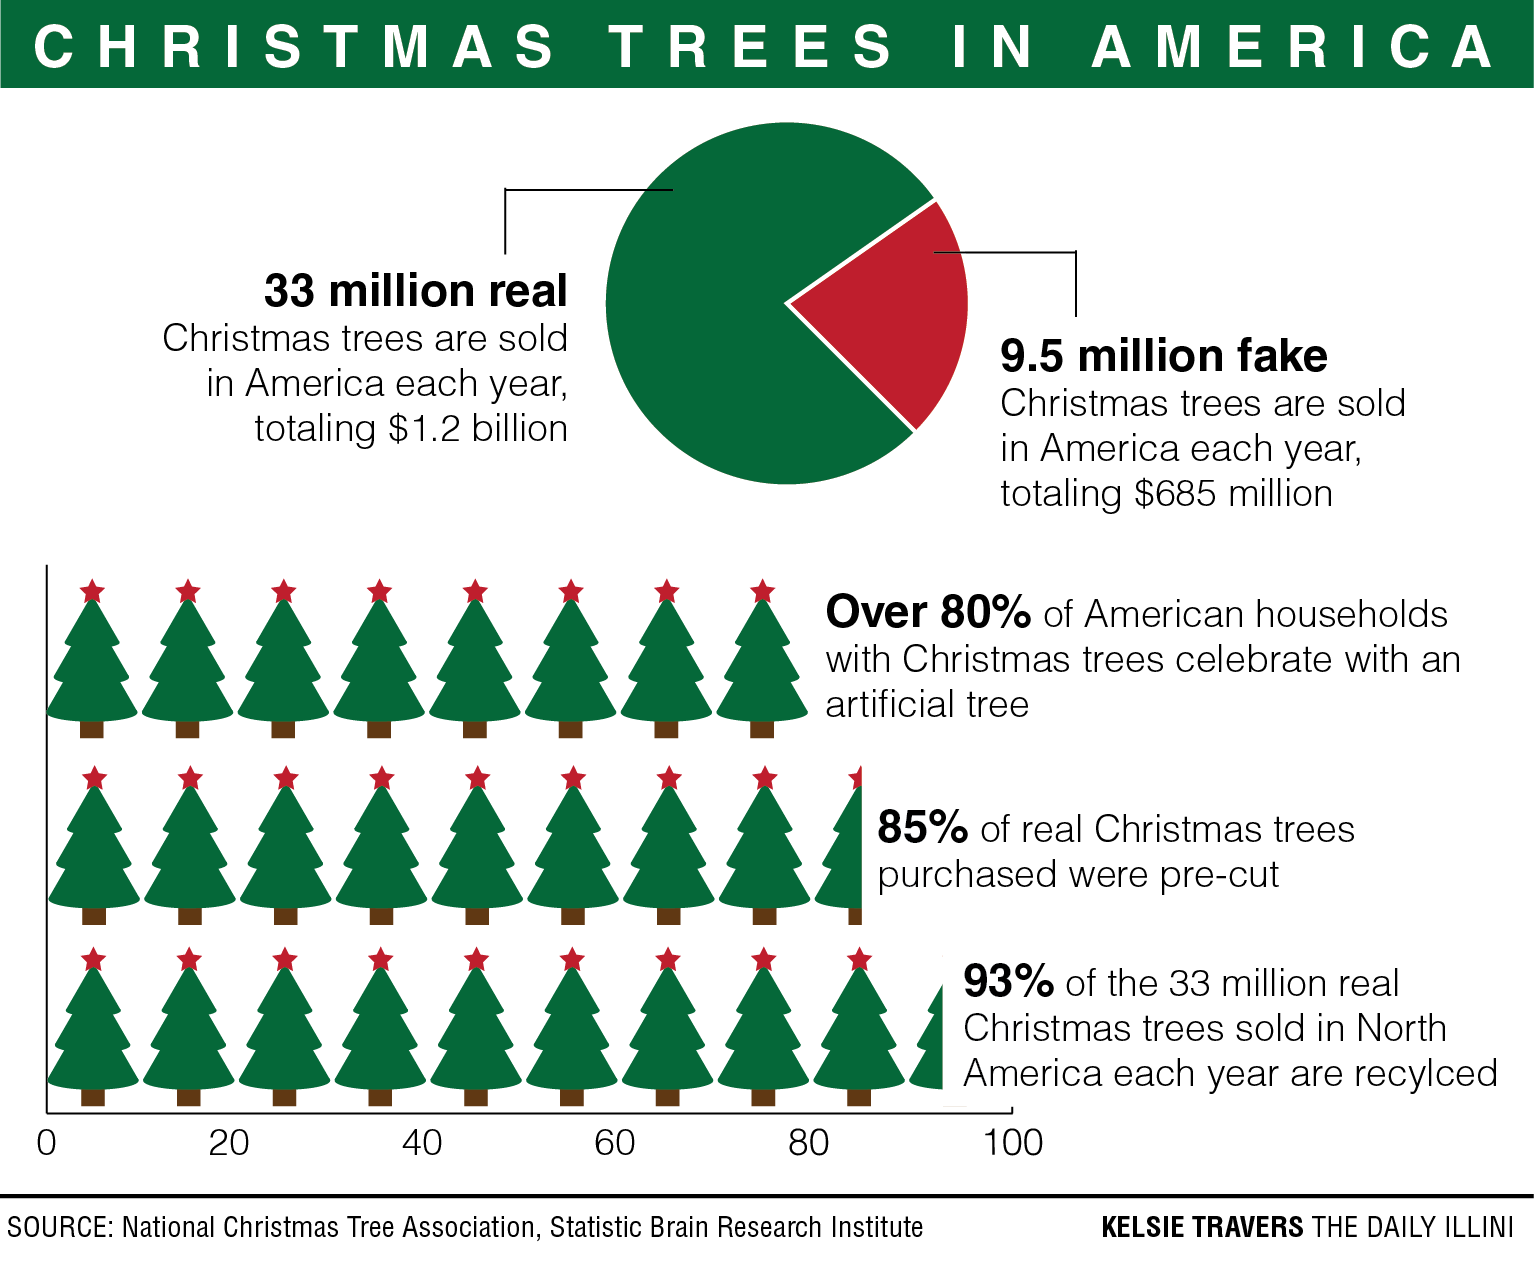 Problems stemming from artificial Christmas trees - The Daily Illini